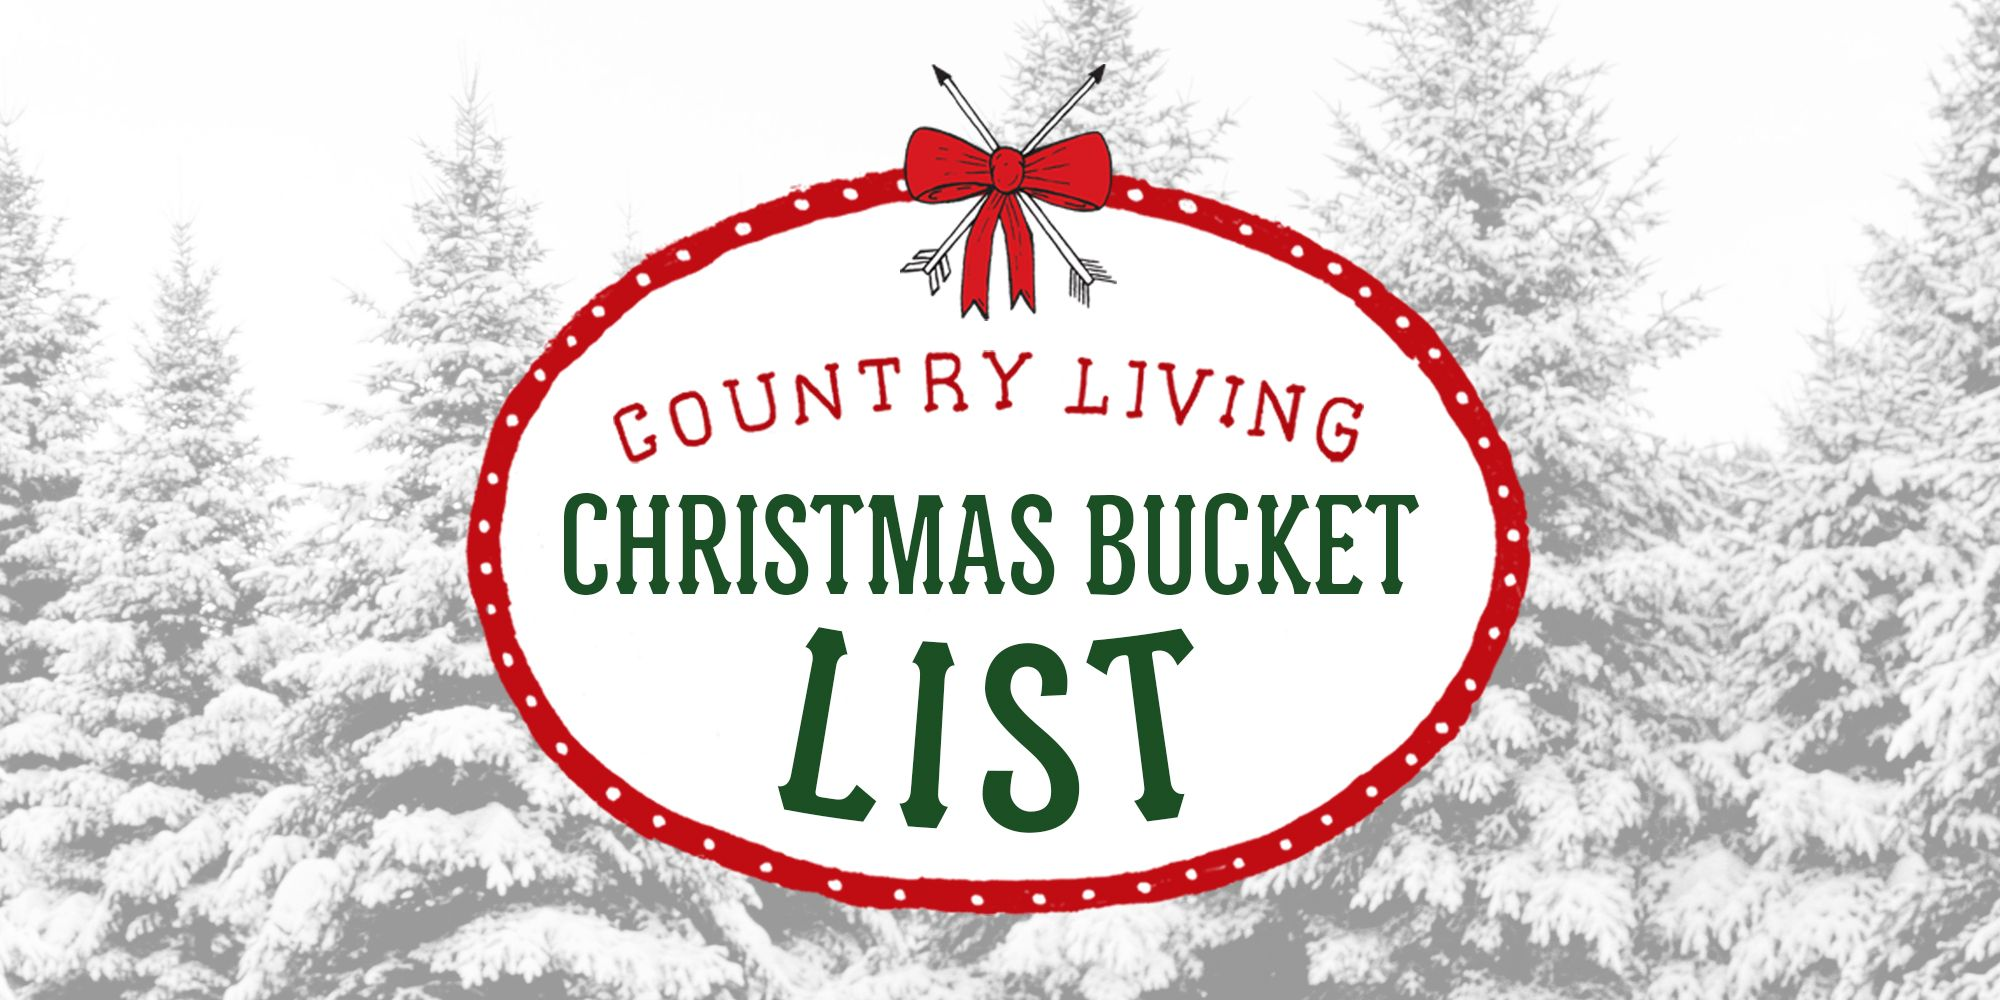 25 Fun Christmas Activities - Christmas Bucket List Ideas - Country ...